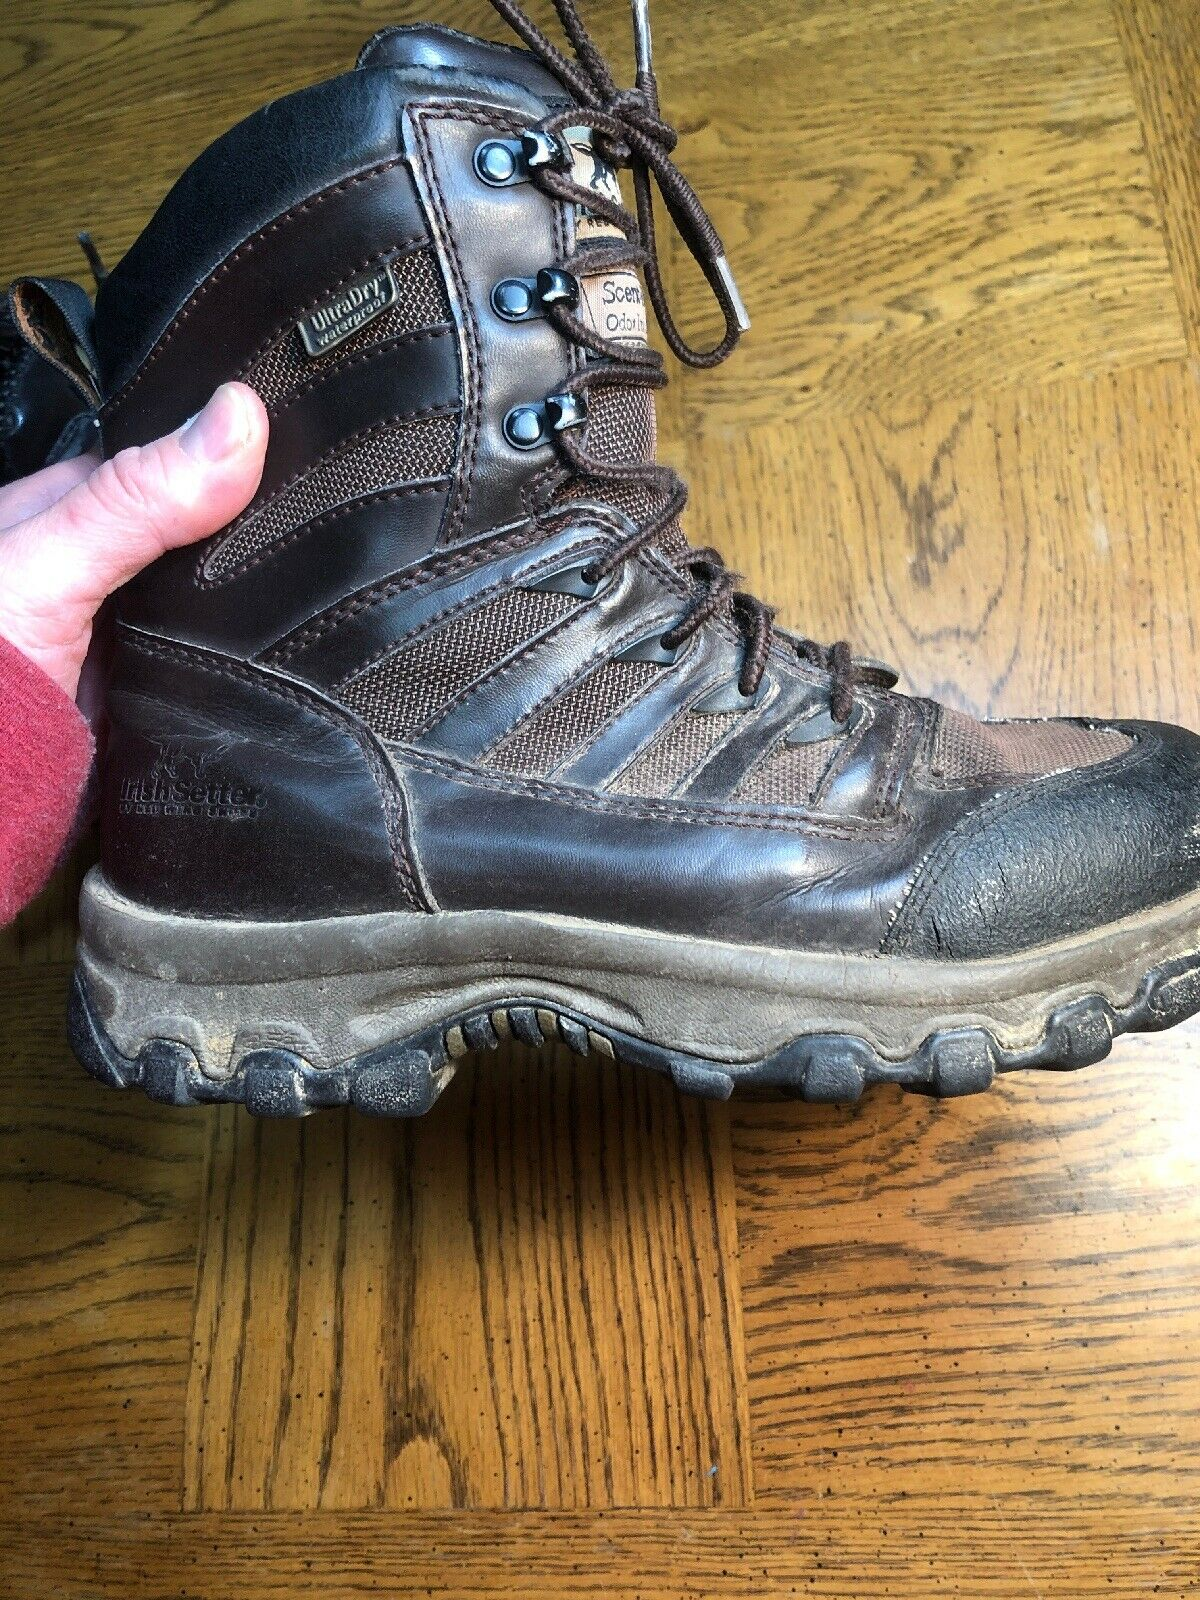 Red Wing shoes Irish Setter Boots Thinsulate 600 Gram Scent Ban Women's 7.5 M